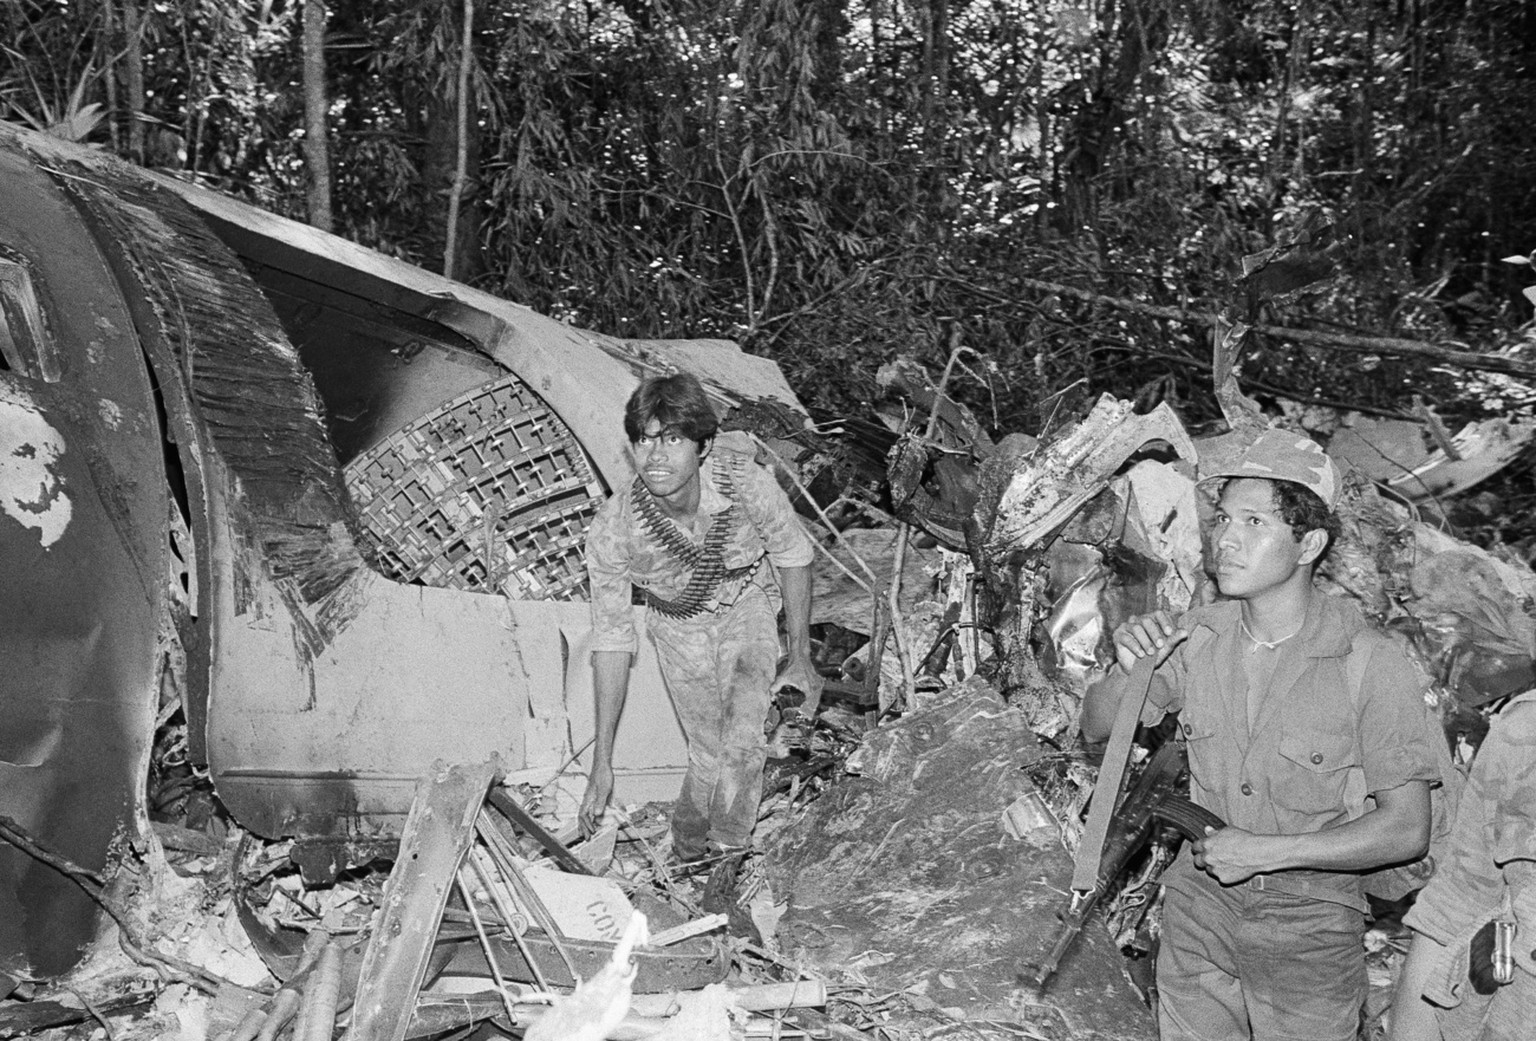 Wreckage of the rebel supply plane shot down on Saturday, Jan. 24, 1988 over Nicaragua lies in a jungle-covered area near the village of El Arenla. The plane was shot down by Sandinista forces after it had ari-dropped supplies to Contra rebels, according to authorities. (AP Photo/Mario Tapia)